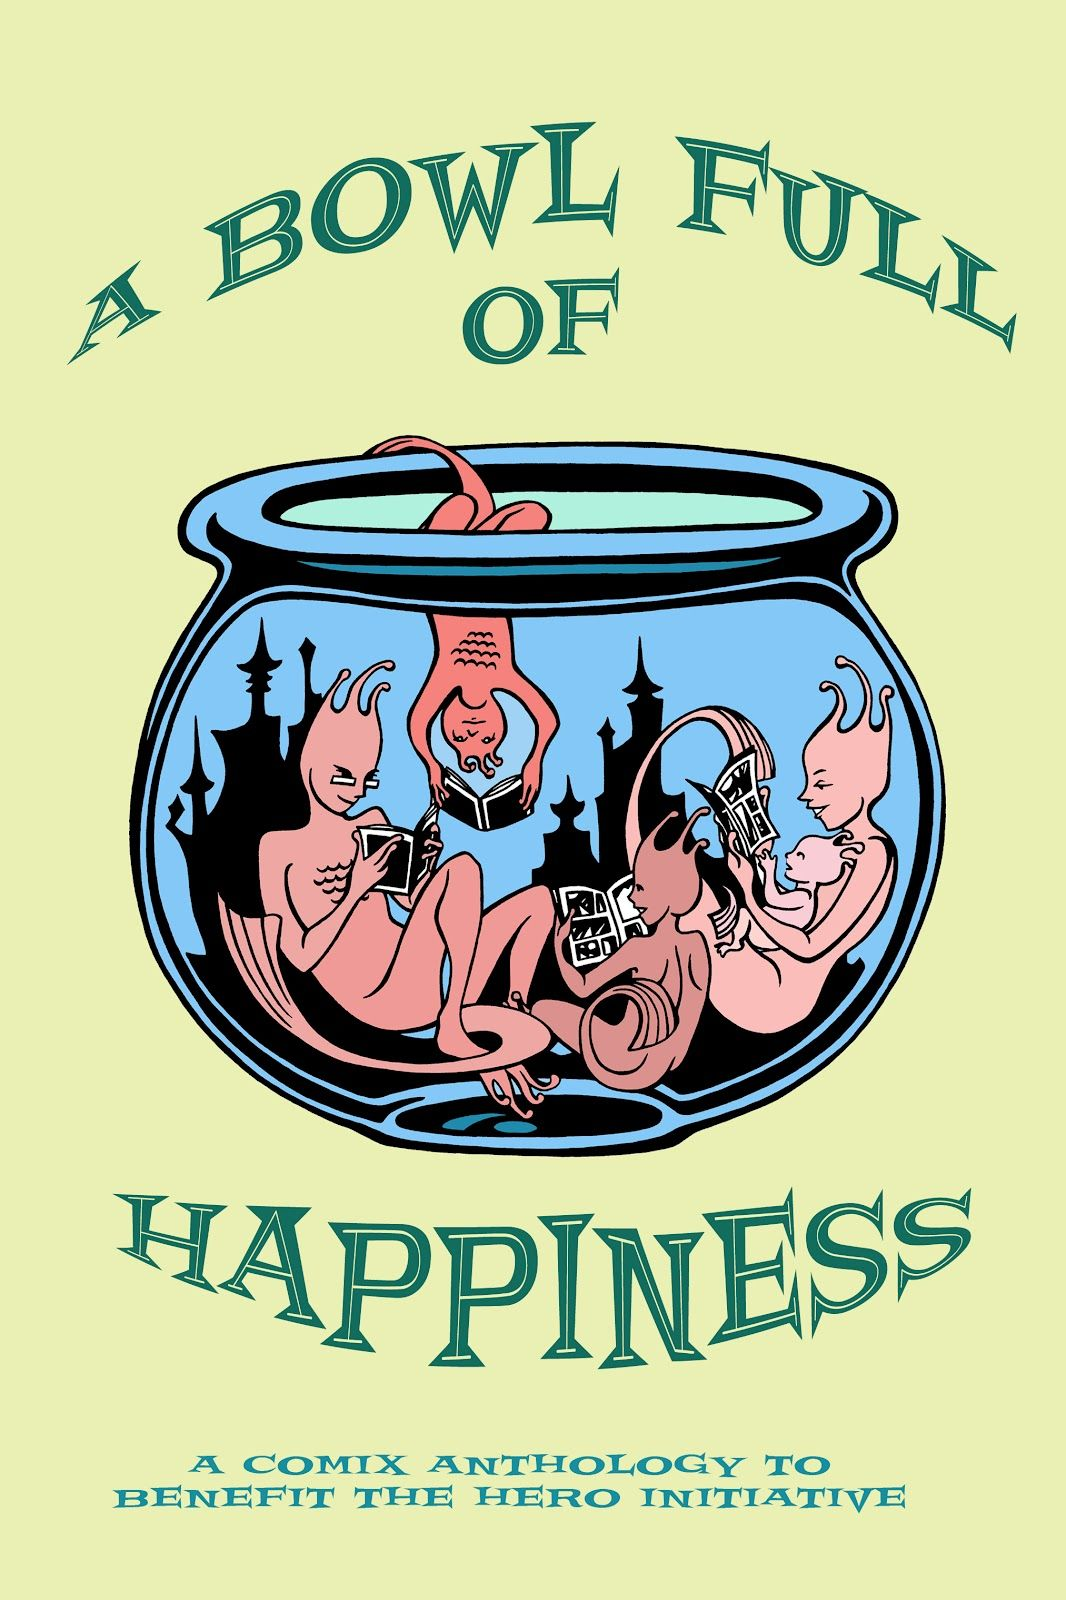 Sea Monkeys Tribute Anthology A Bowl Full Of Happiness Proceeds